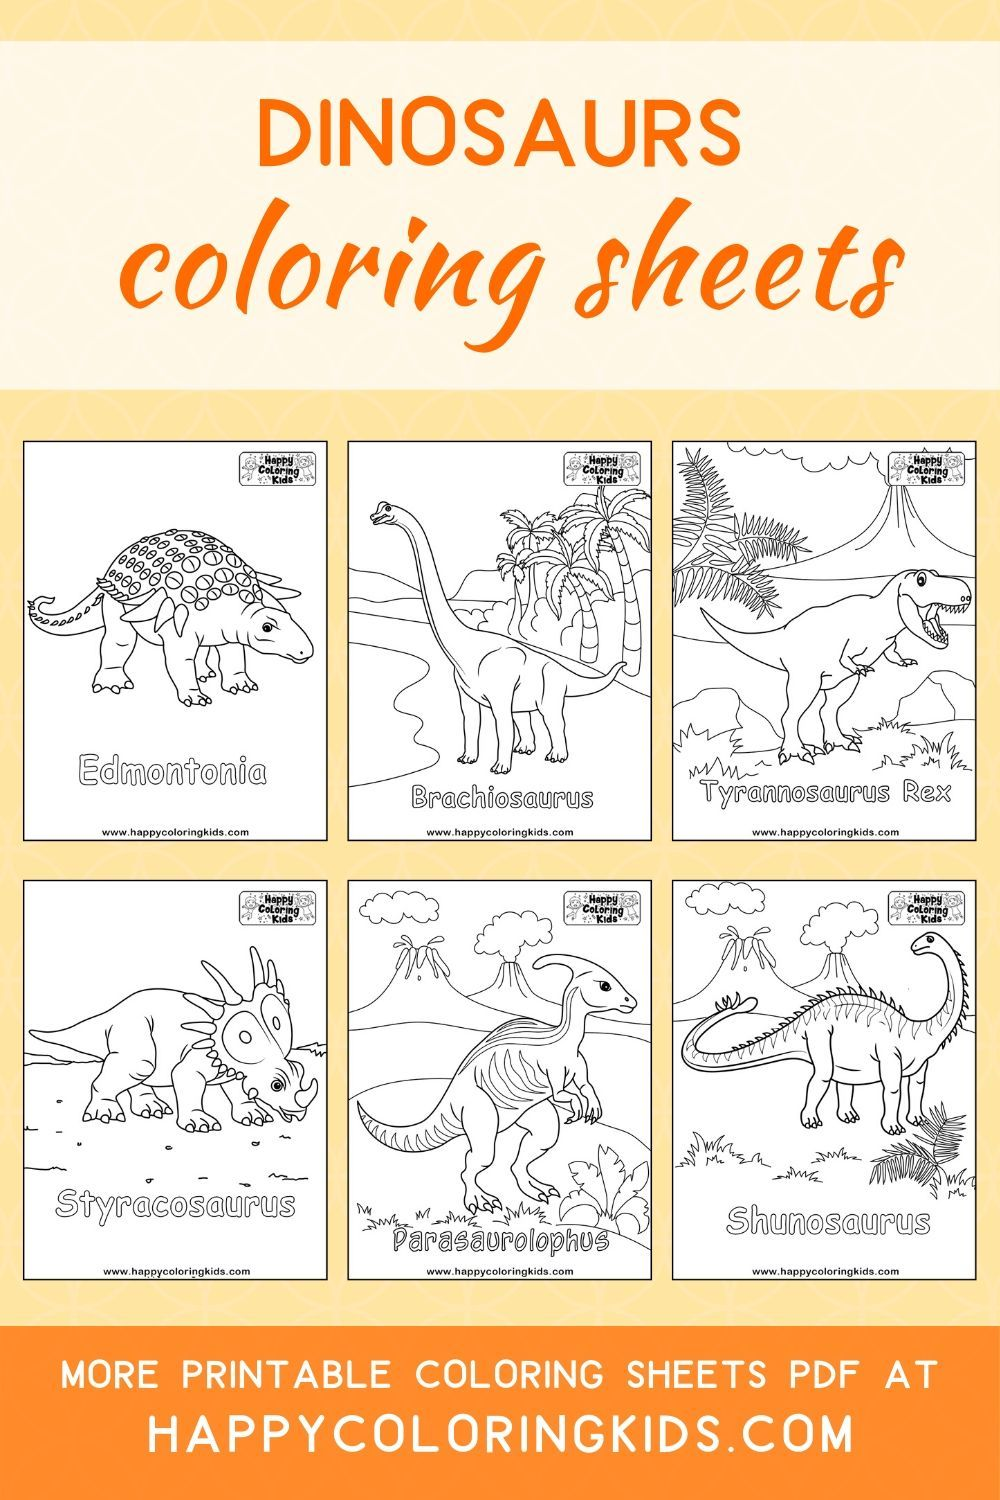 Dinosaurs coloring pages for kids free printable in 2020